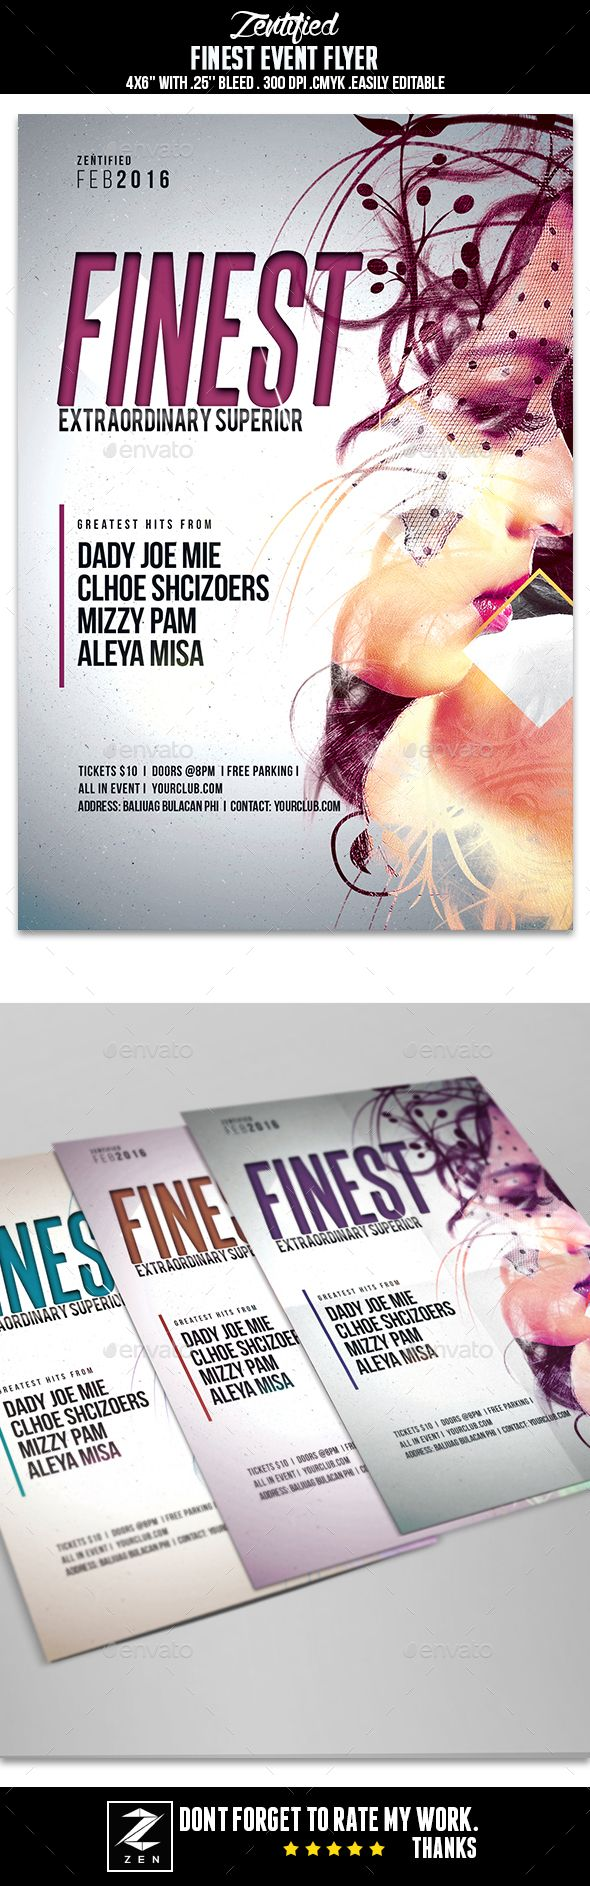 Finest Event Flyer Template PSD. Download here: http://graphicriver ...